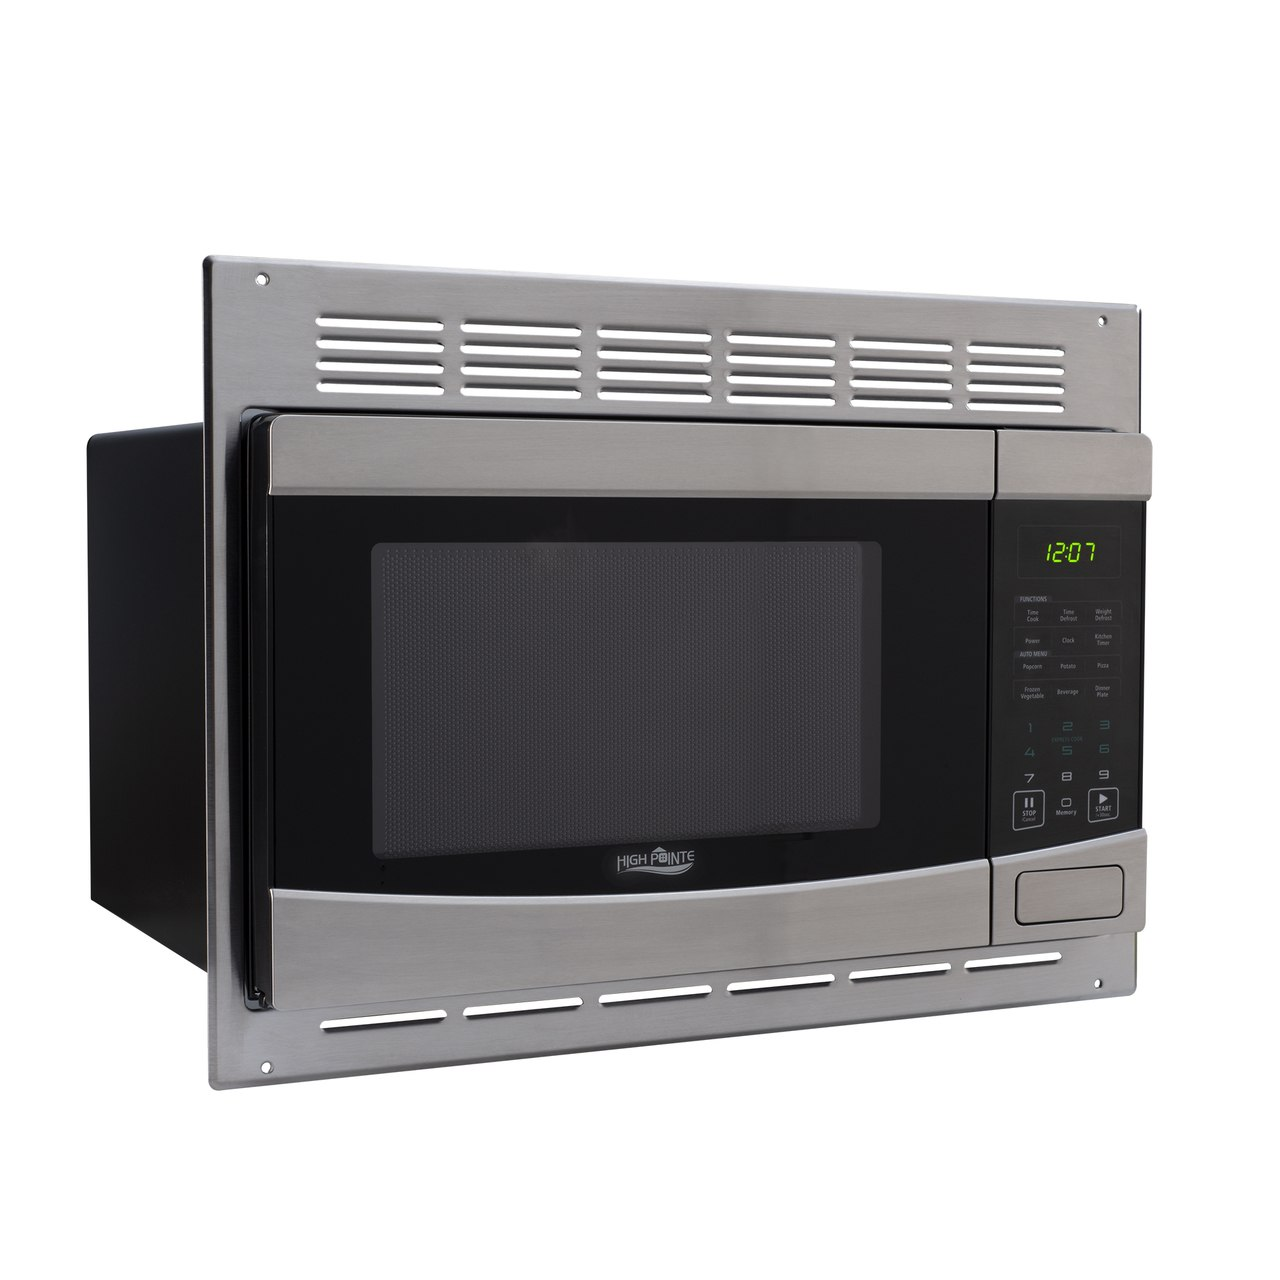 Appliances rv microwave stainless steel 1 0 cu ft - Stainless steel microwave interior ...